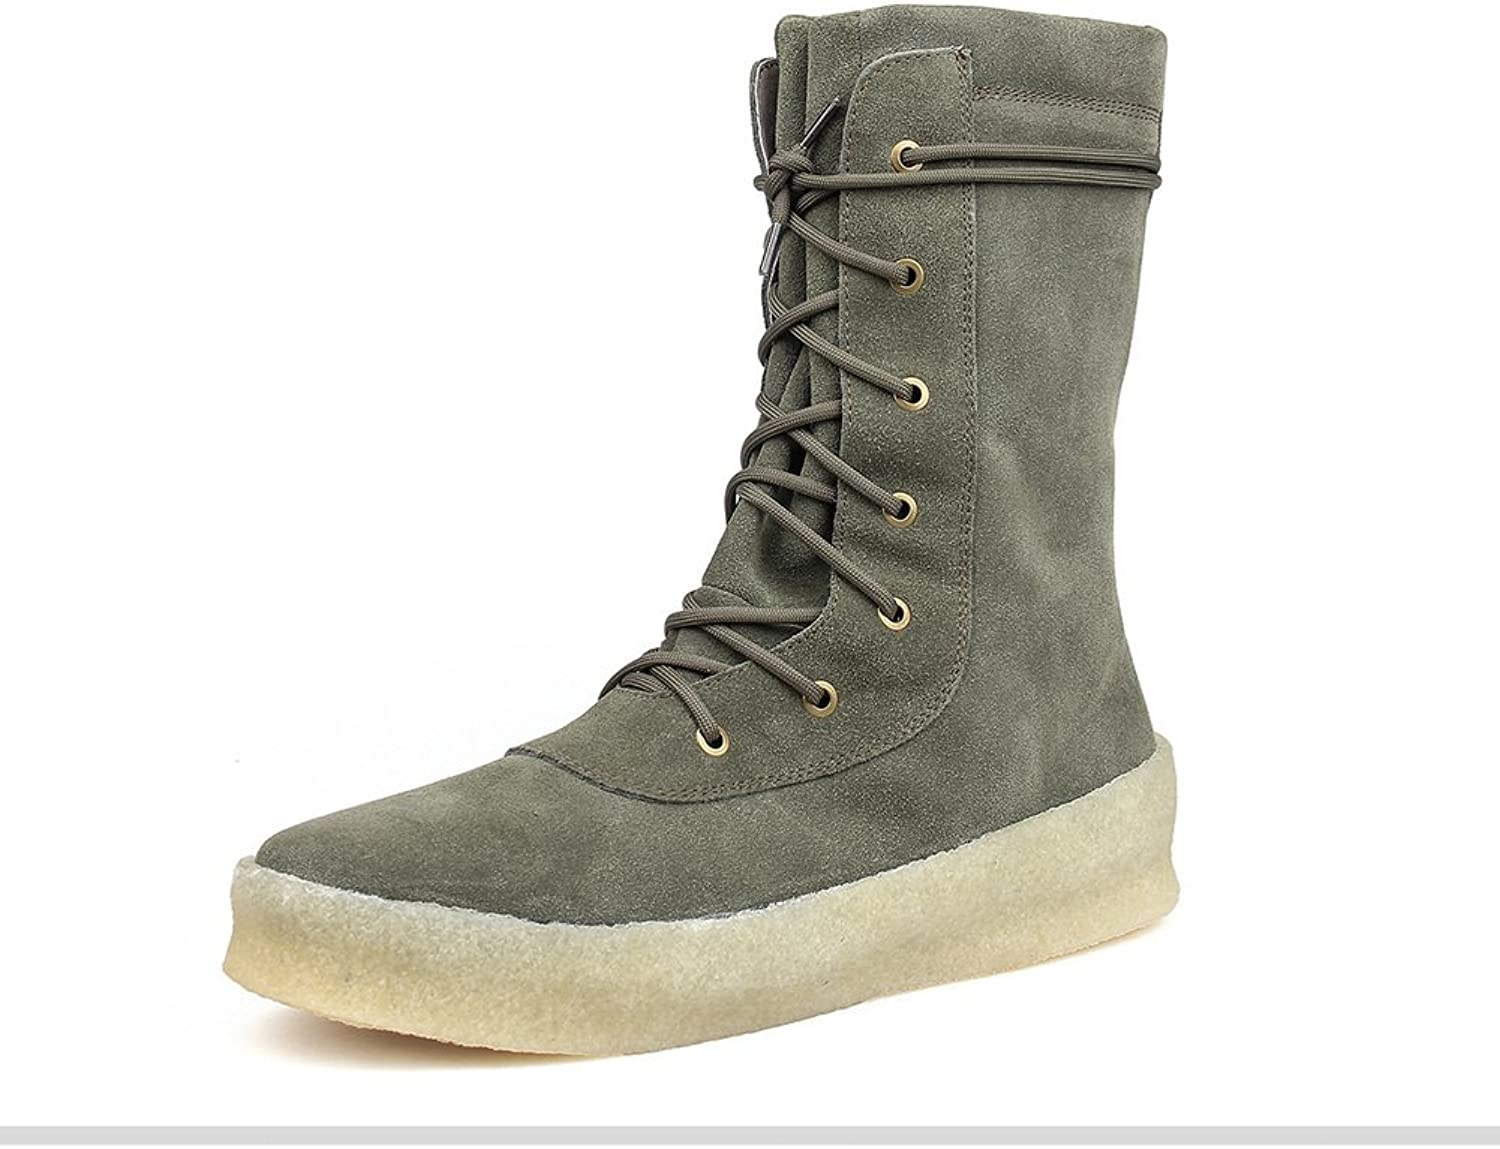 New coconut shoes snow boots for fall winter high top Martin boots